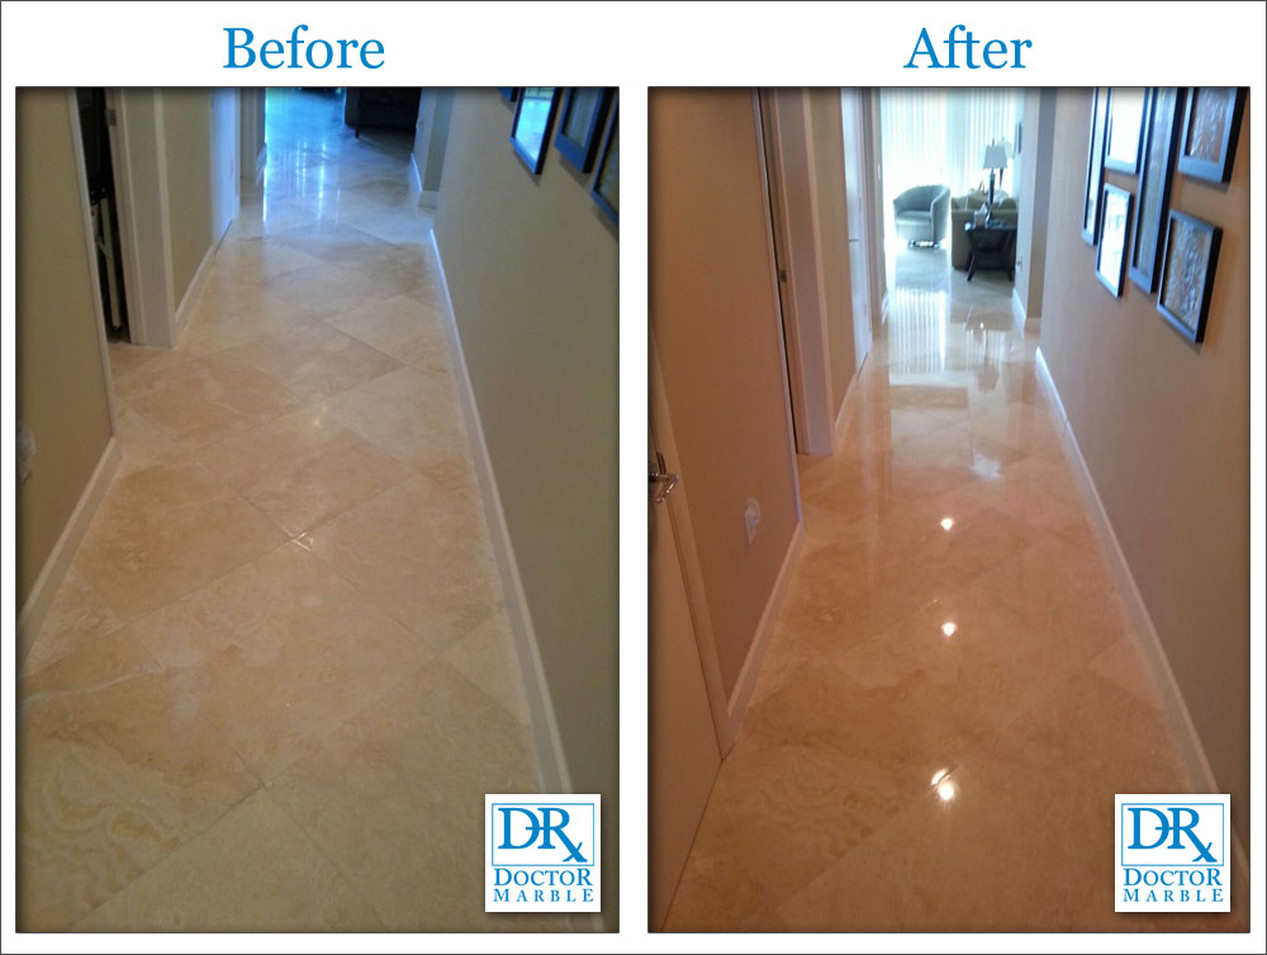 Polishing & Grout cleaning-After & Before